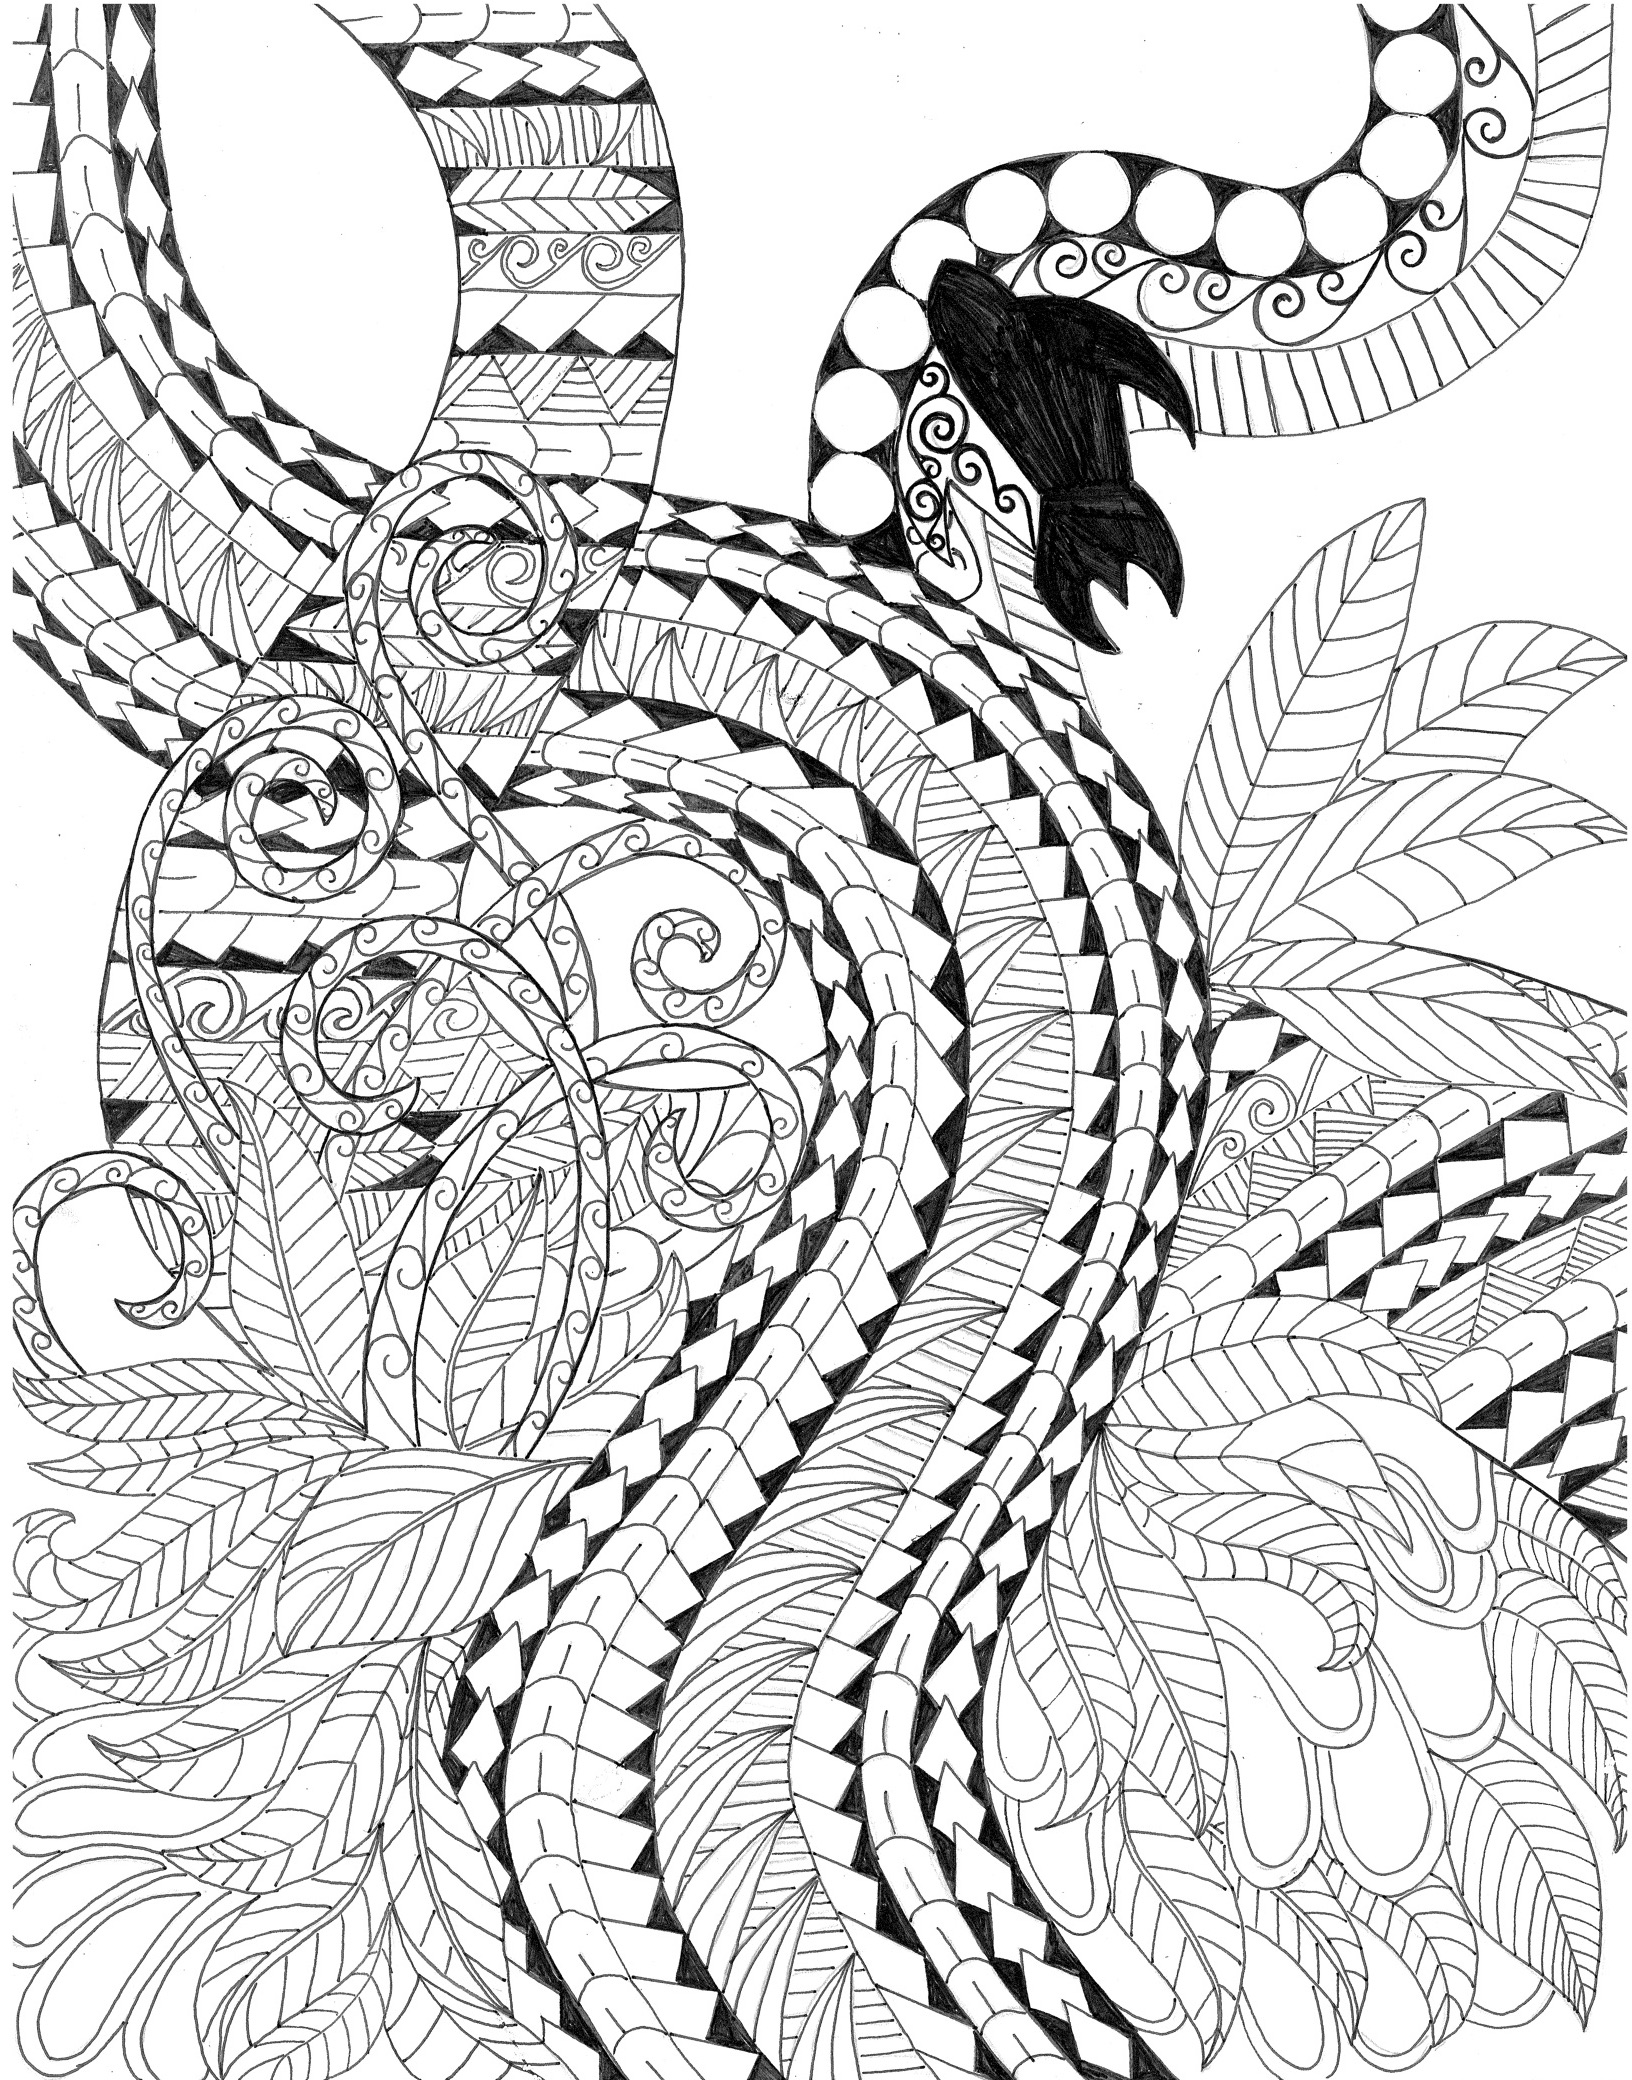 Koru 2 Free New Zealand Coloring Page Inspired By Maori Tattoos